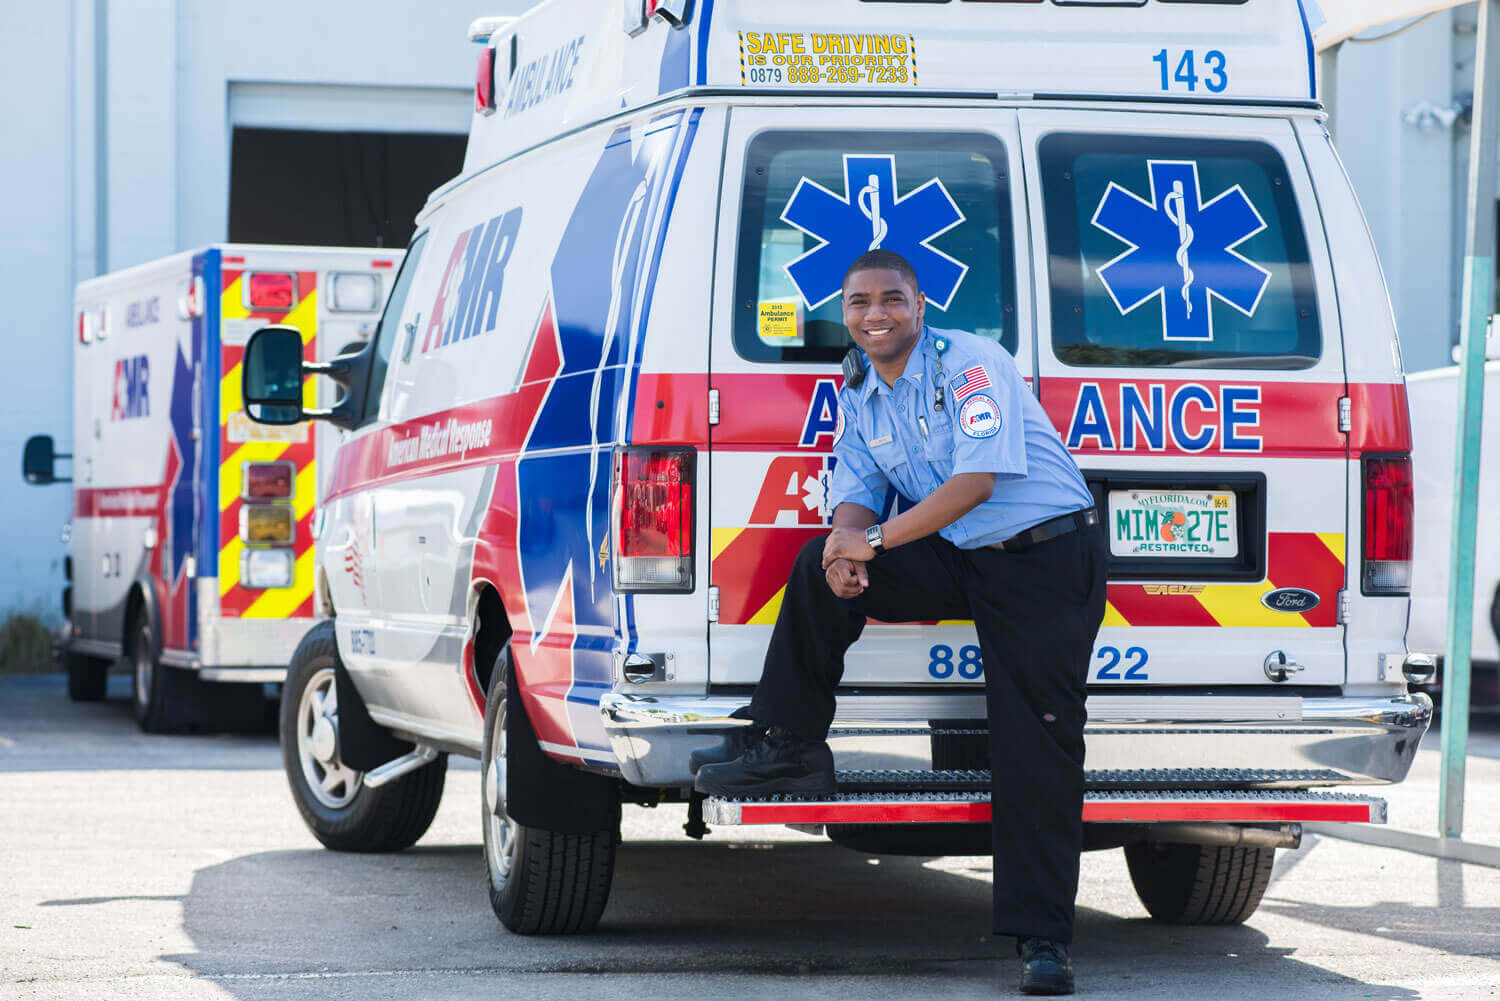 By the time Shovon was 10, he had already had 6 operations on his heart. When he was 16 the doctor's told his family his heart was failing and a transplant was necessary. Shovon honors his donor by living each day to the fullest and through his work as a paramedic. Click to read Shovon's full story of hope. -